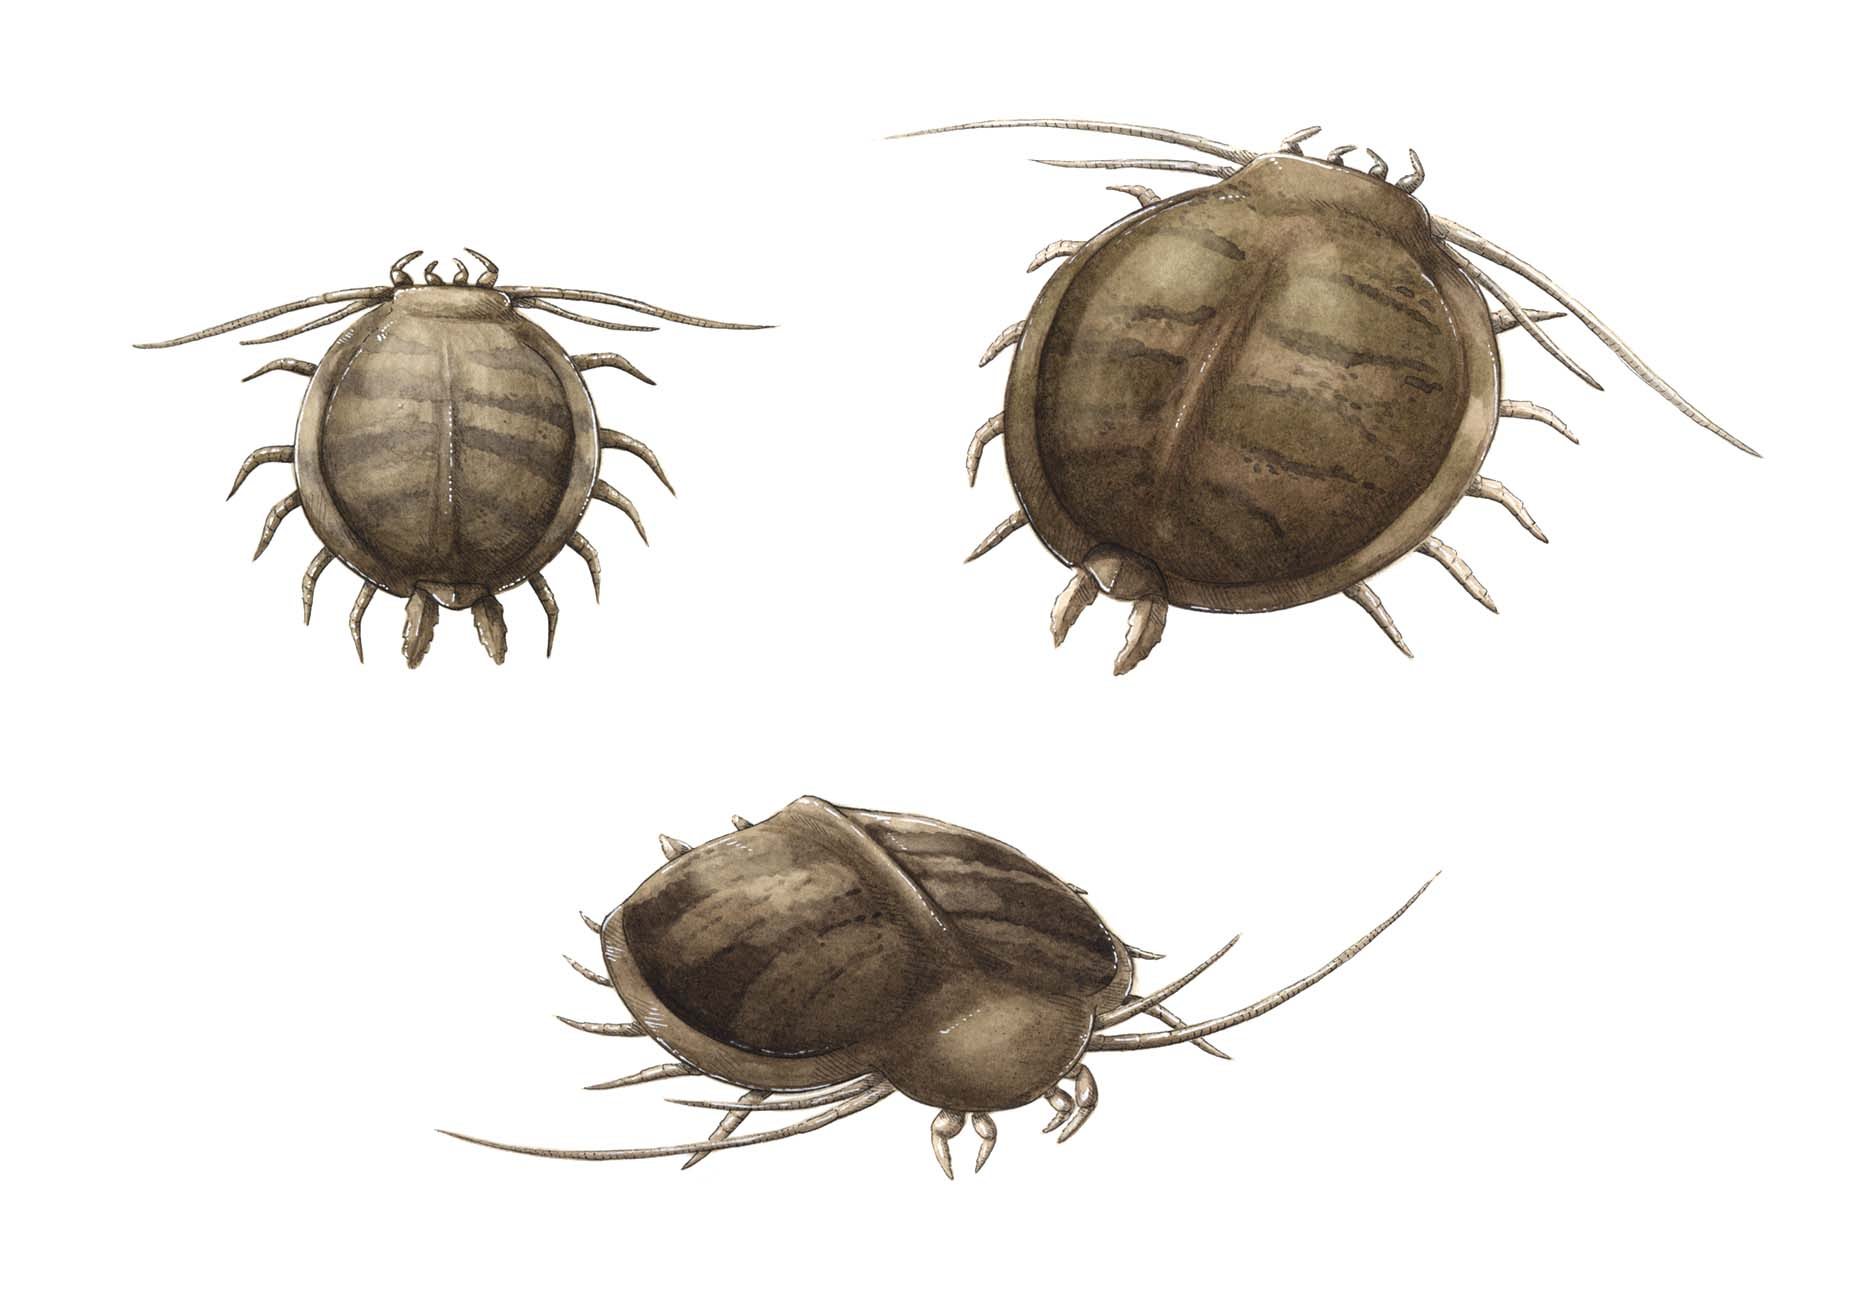 Illustration of small brown, crab-like animals